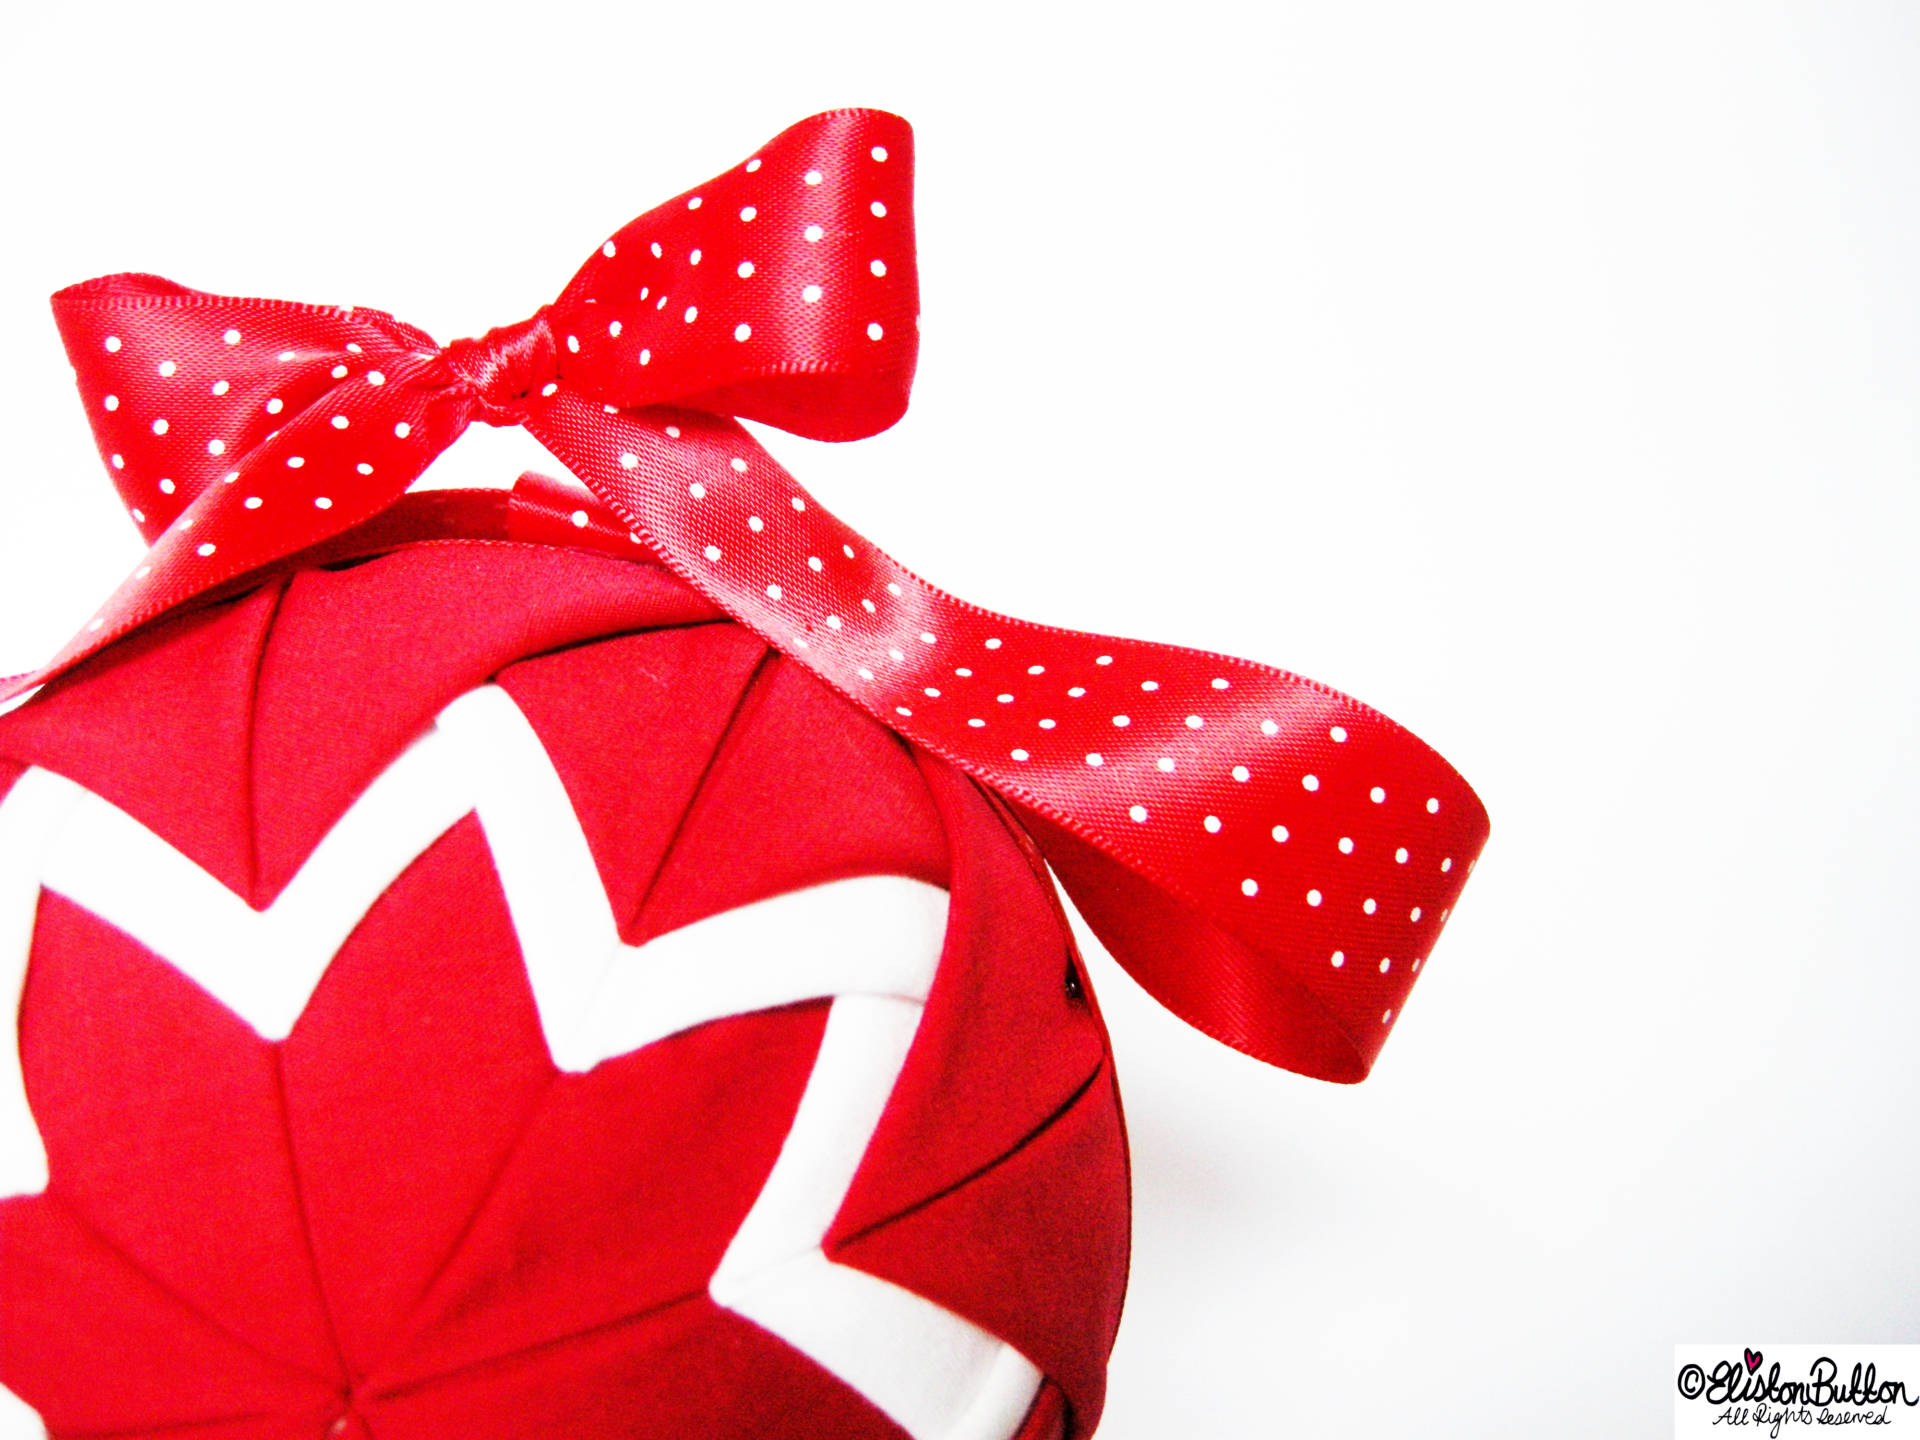 Red and White Quilted Christmas Bauble - Quilted Christmas Baubles - A Tutorial at www.elistonbutton.com - Eliston Button - That Crafty Kid – Art, Design, Craft & Adventure.